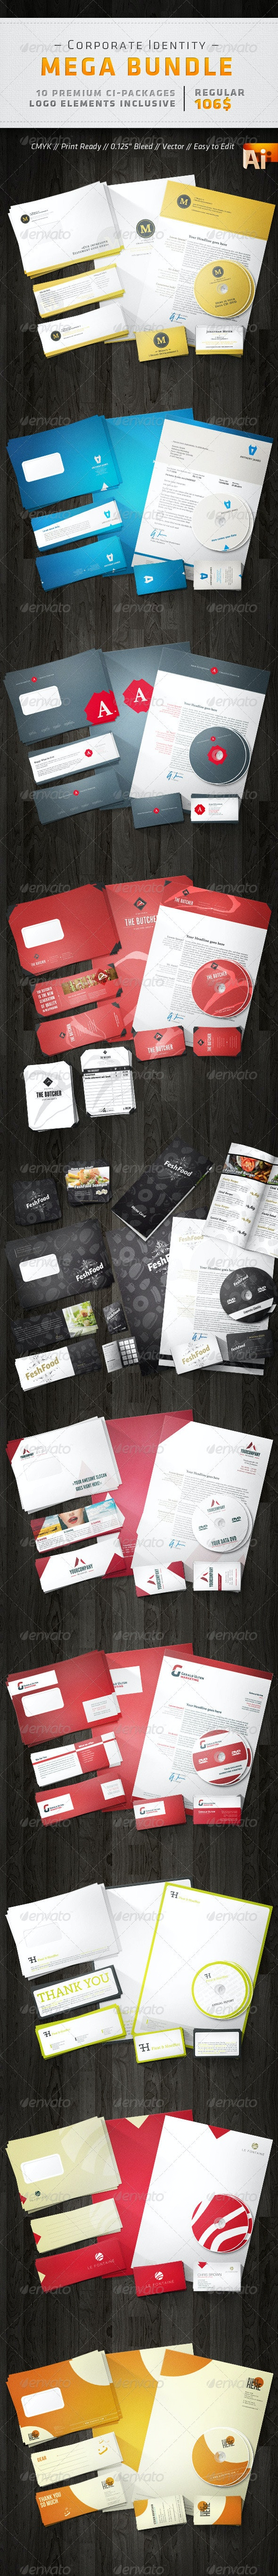 Corporate Design Mega Bundle - Stationery Print Templates